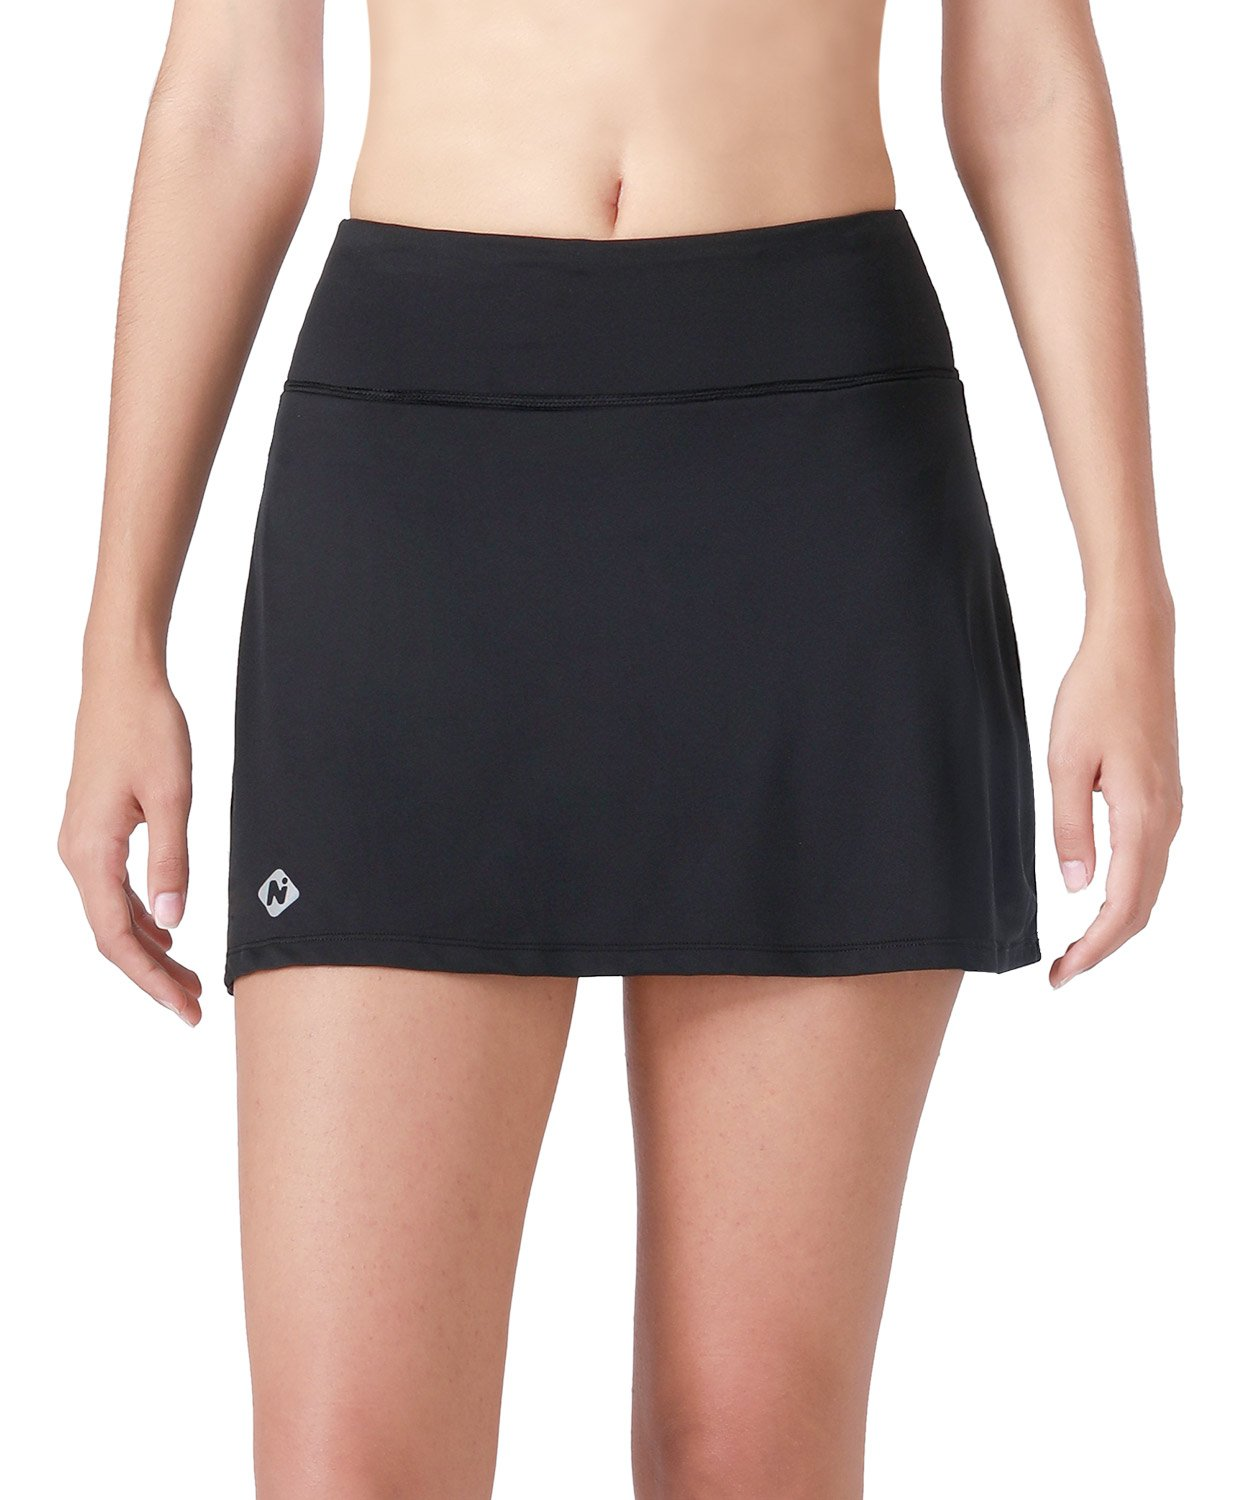 Naviskin Women's Active Athletic Skort Lightweight Skirt with Pockets Inner Shorts Perfect for Running Golf Tennis Workout Casual Use Black Size M by Naviskin